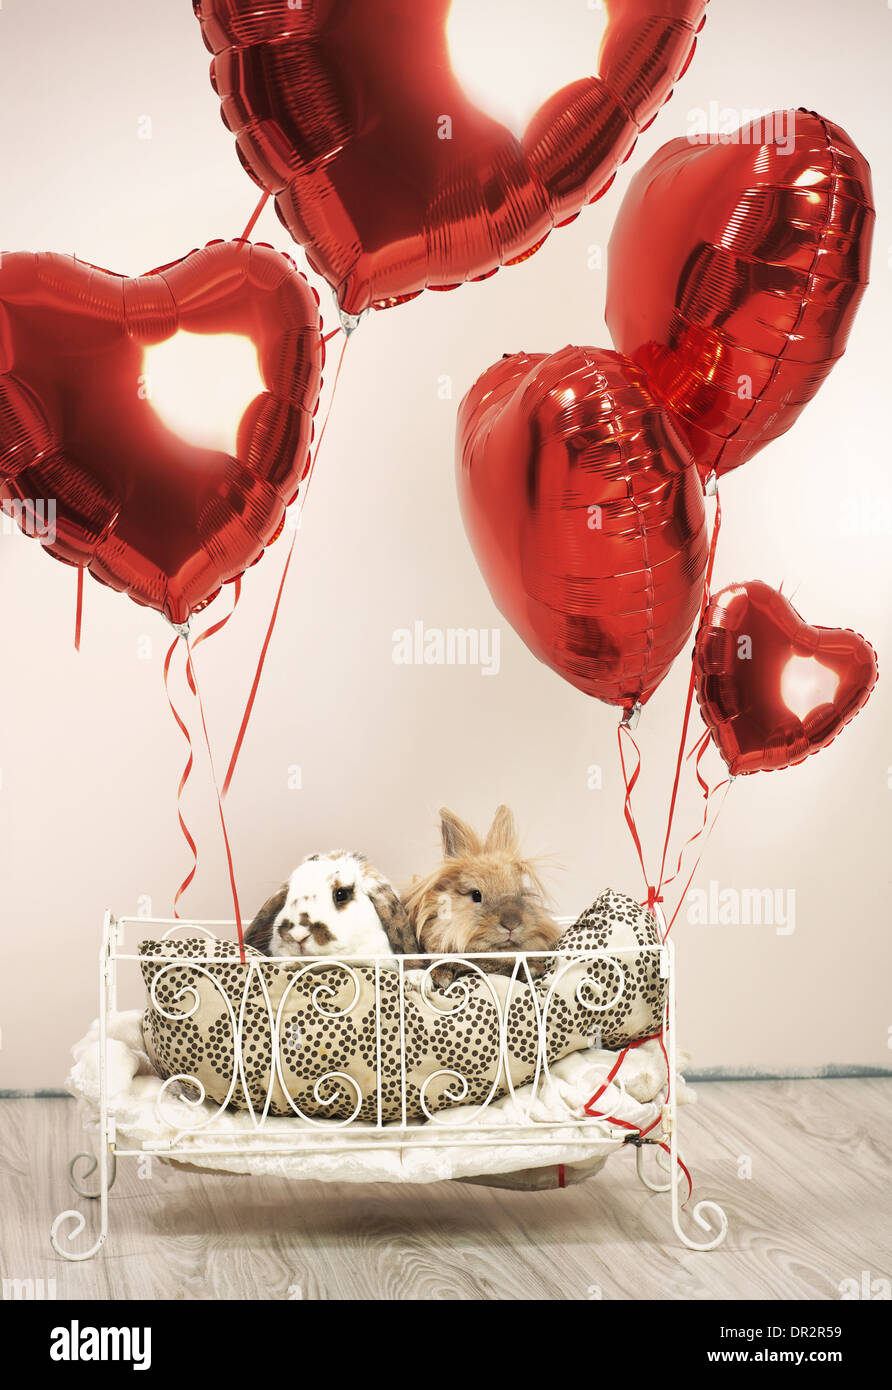 Two rabbits in valentine's scene with balloons - Stock Image